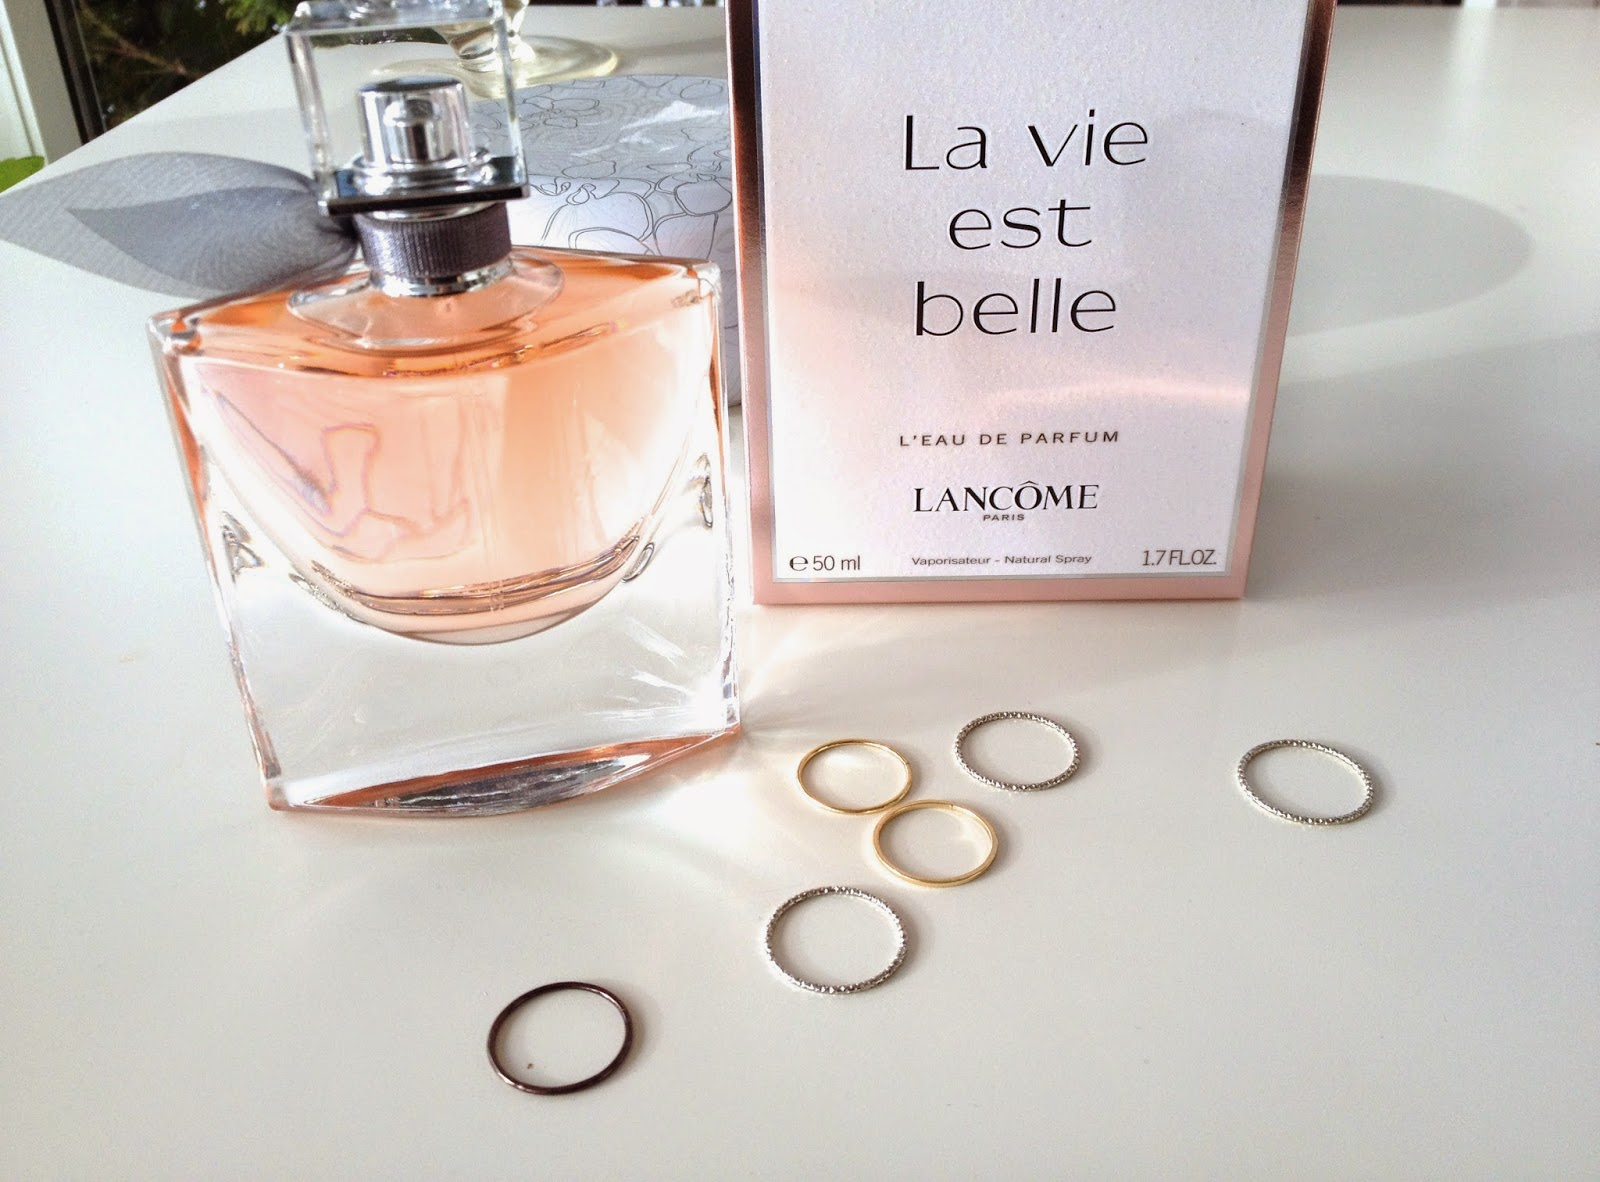 La Est ReviewChristine's Lancôme And Beauty Belle Vie Perfume 08wnOkNPX